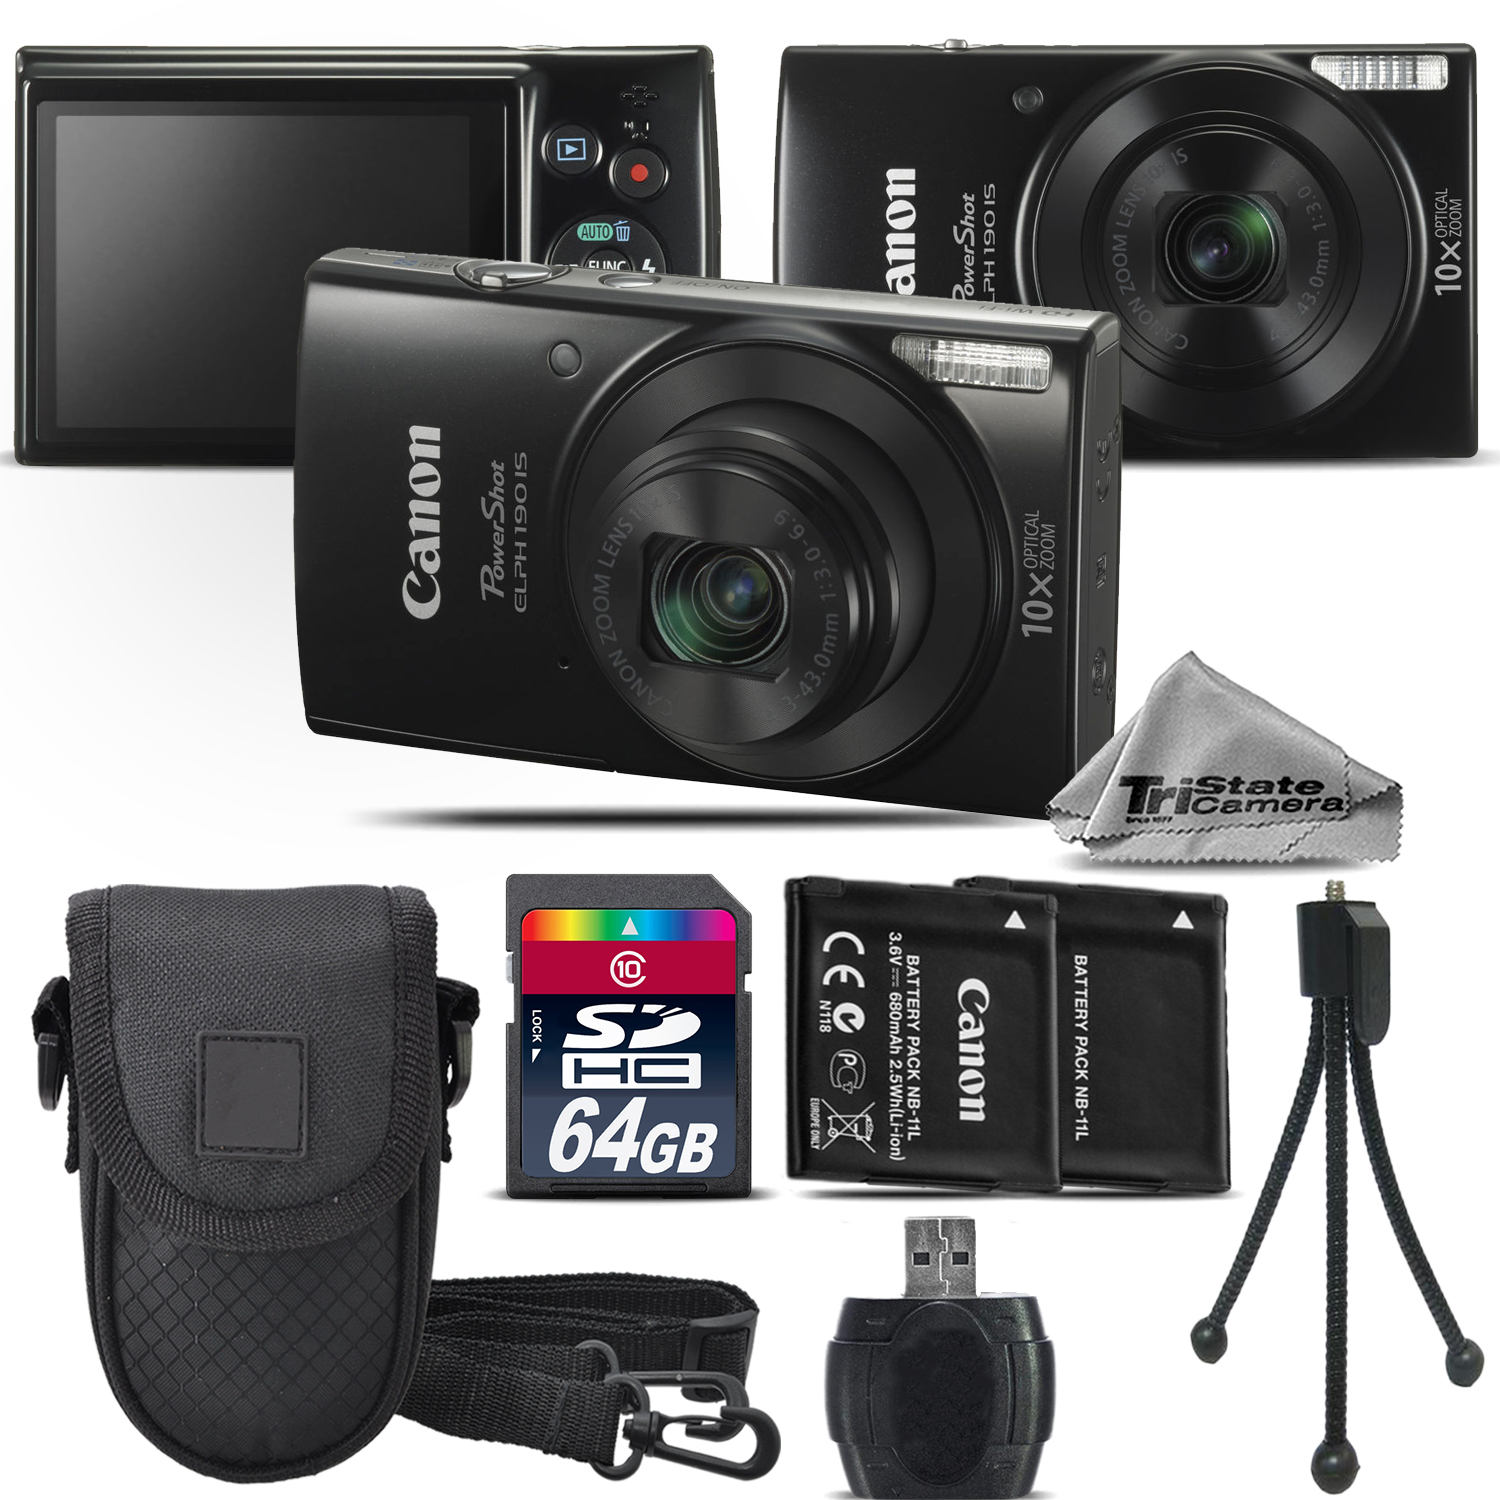 PowerShot ELPH 190 Digital Camera Black WiFi 10X Optical Zoom - 64GB Kit *FREE SHIPPING*